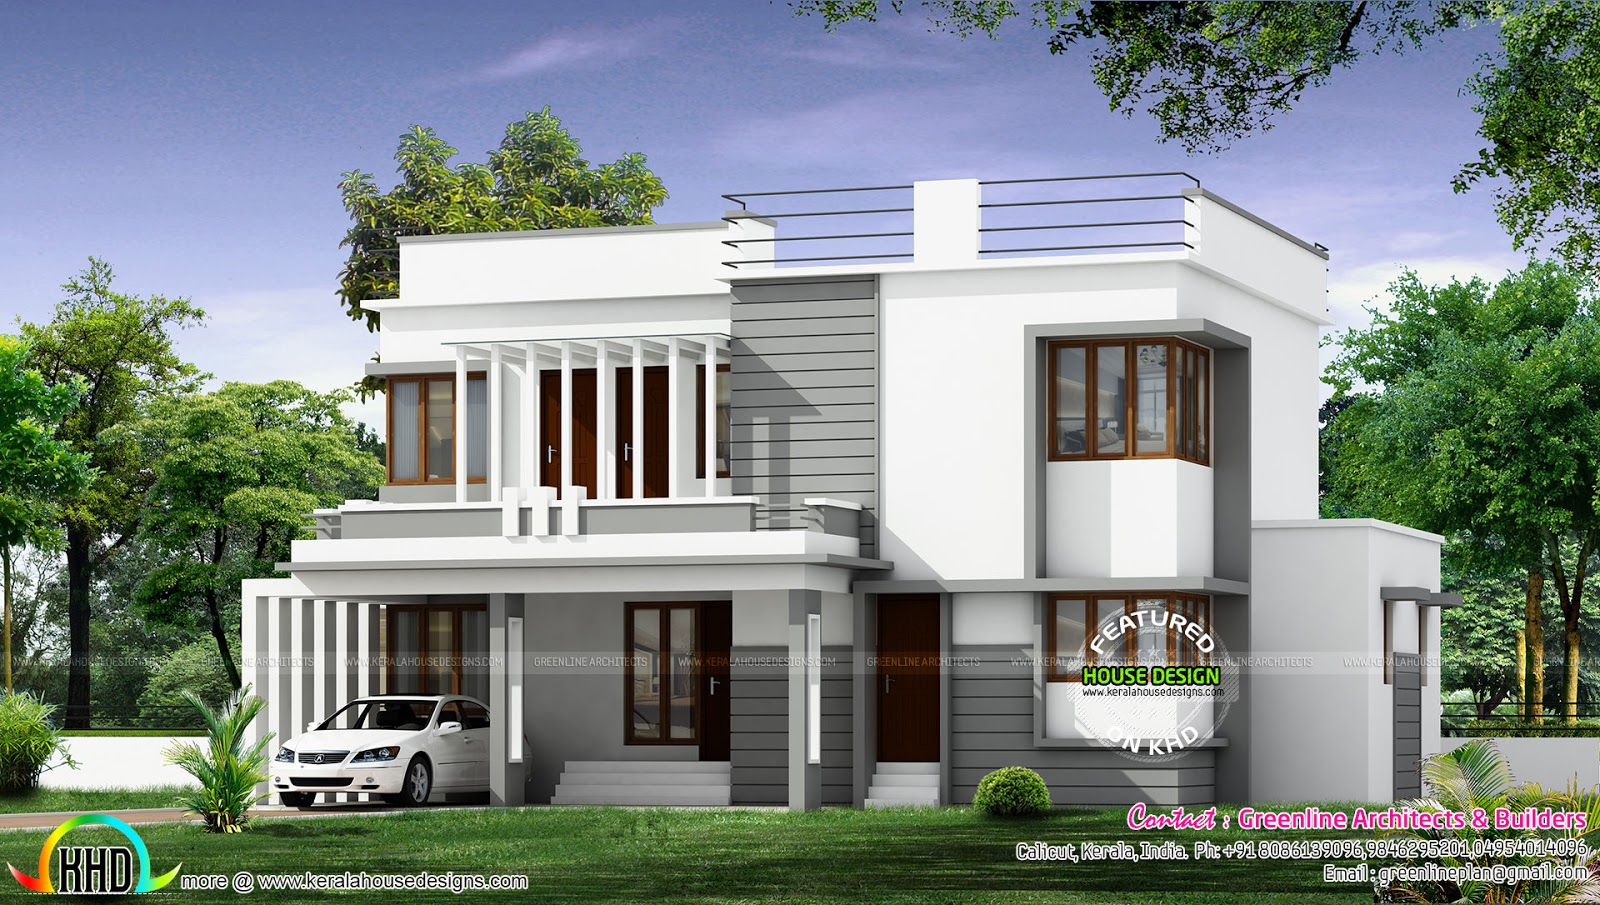 New modern house architecture kerala home design and for Home style photo